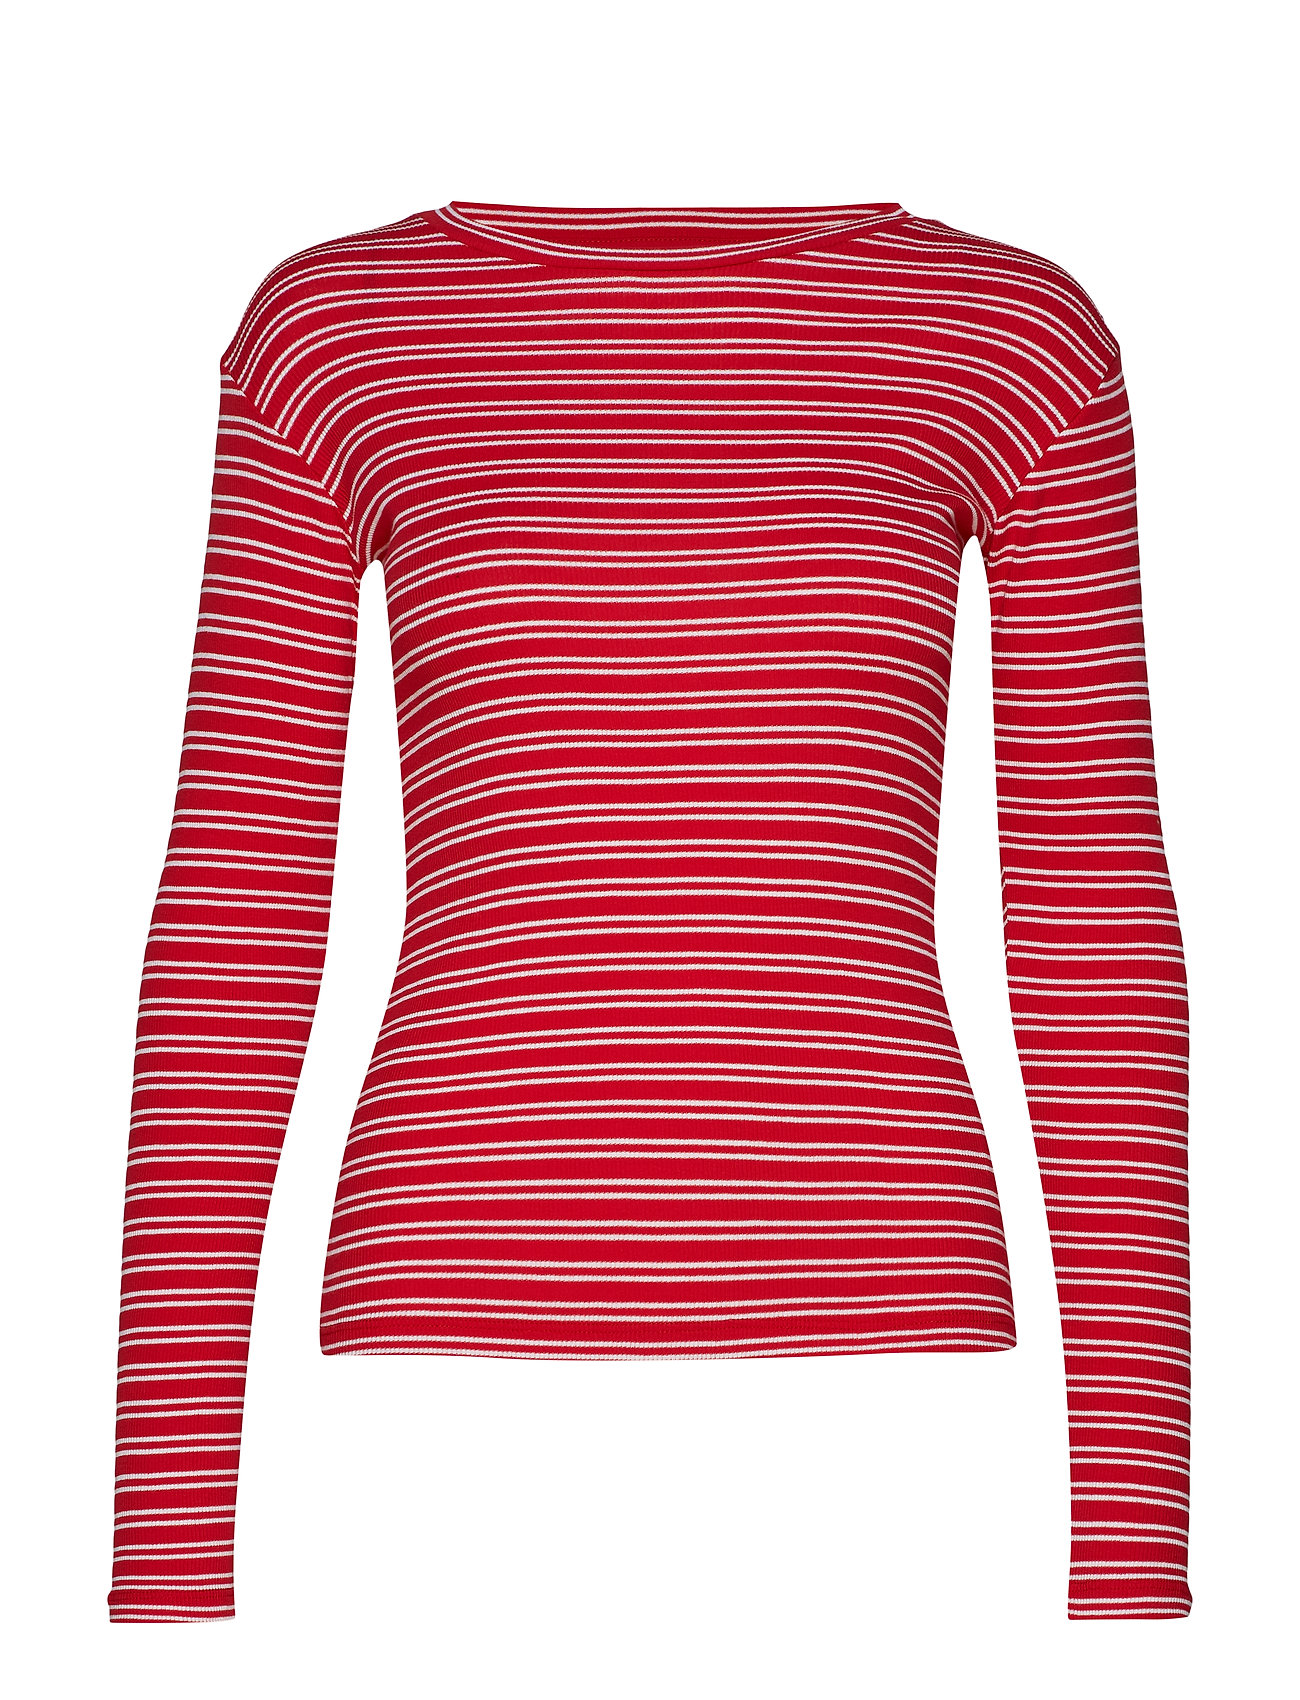 Mads Nørgaard 2x2 Duo Stripe Tuba - BRIGHT RED/WHITE